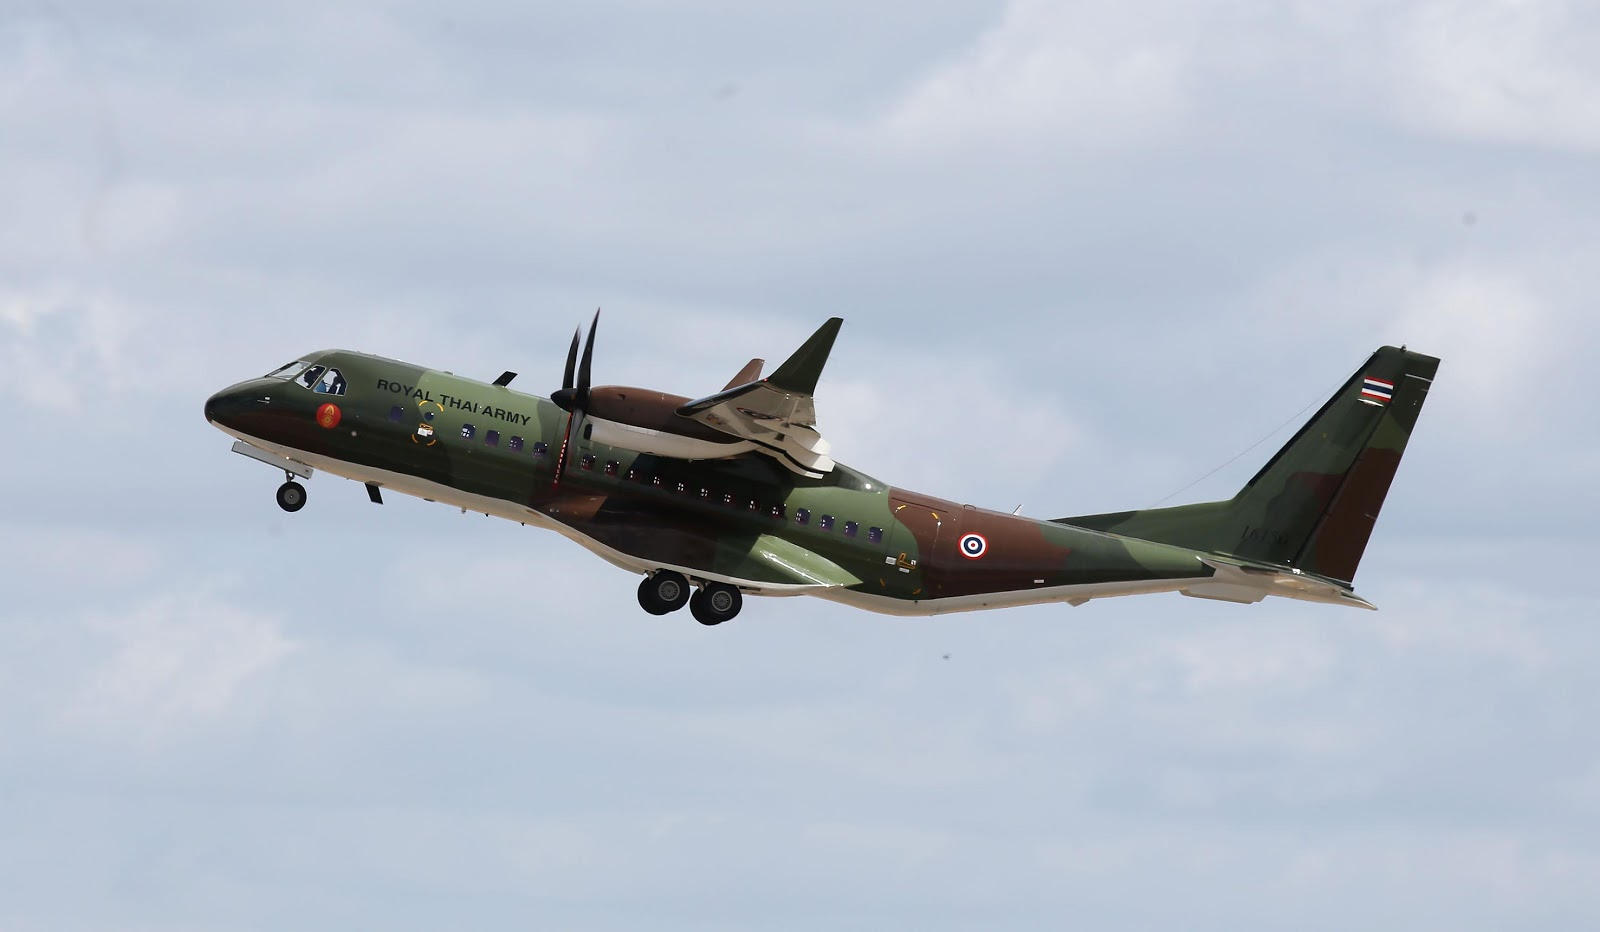 Thailand Ministry of Defence Orders Additional Airbus C295 Tactical Transport